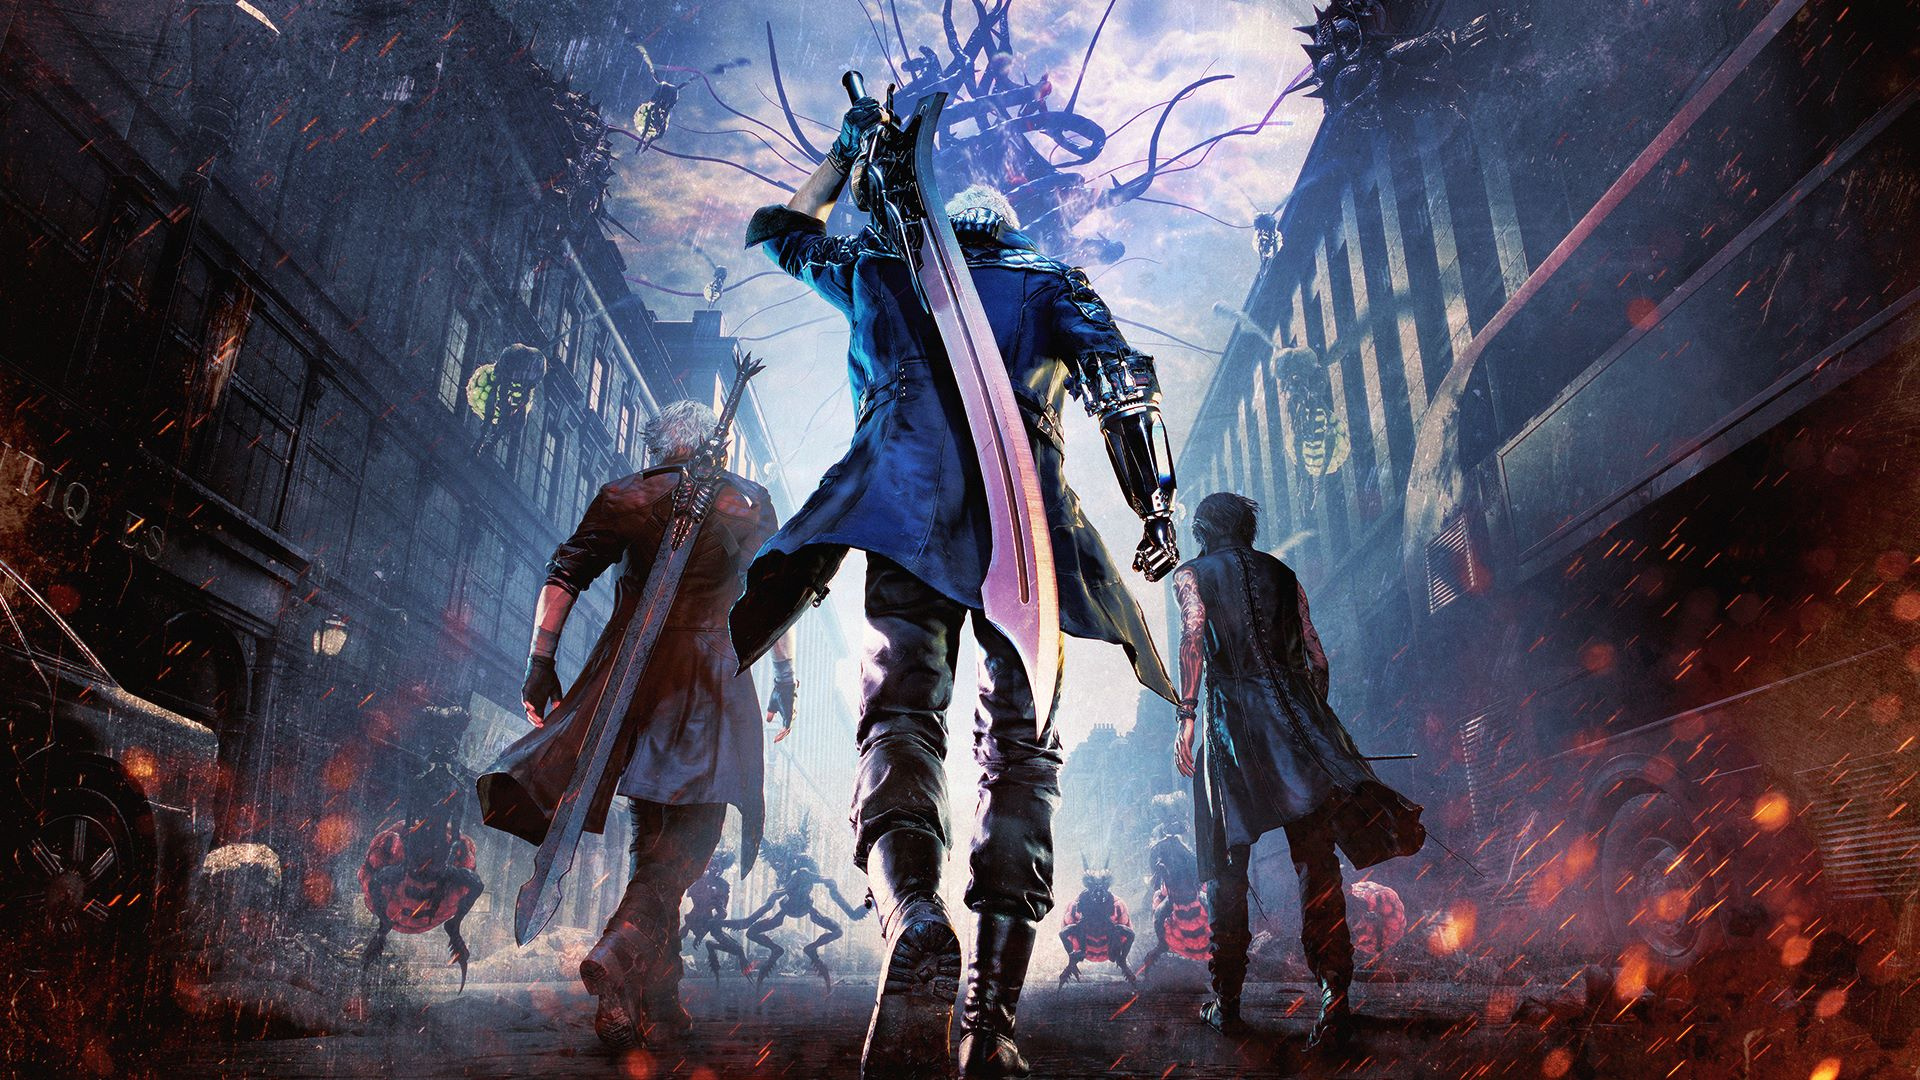 US PSN Flash Sale Discounts Devil May Cry 5, MLB The Show 19, and EA Games